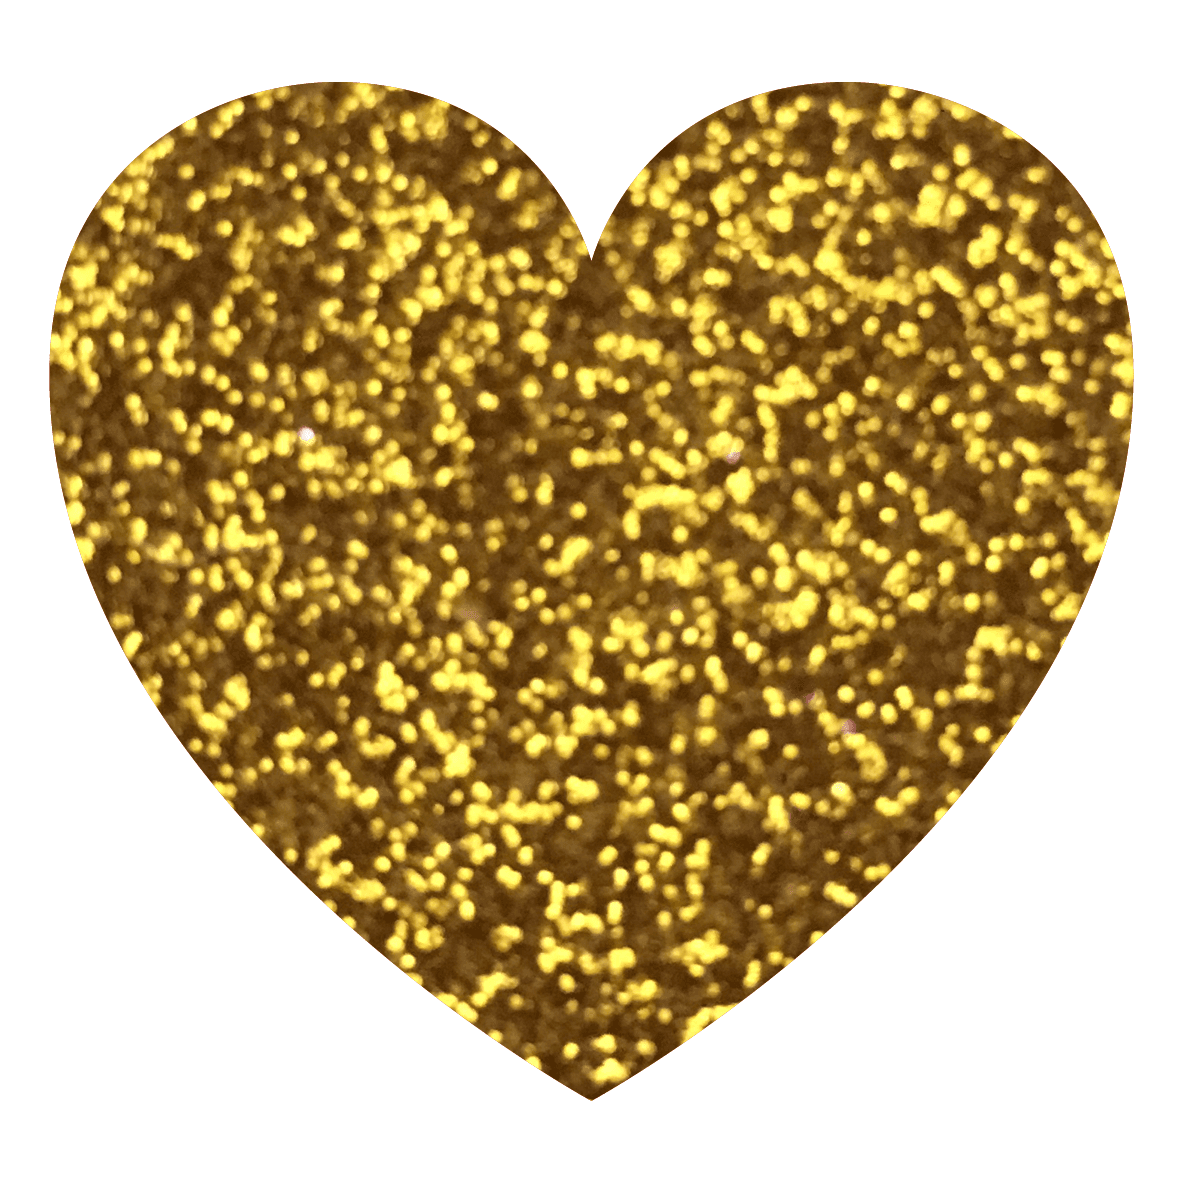 Yellow Gold - Gold Glitter Heart, Transparent background PNG HD thumbnail